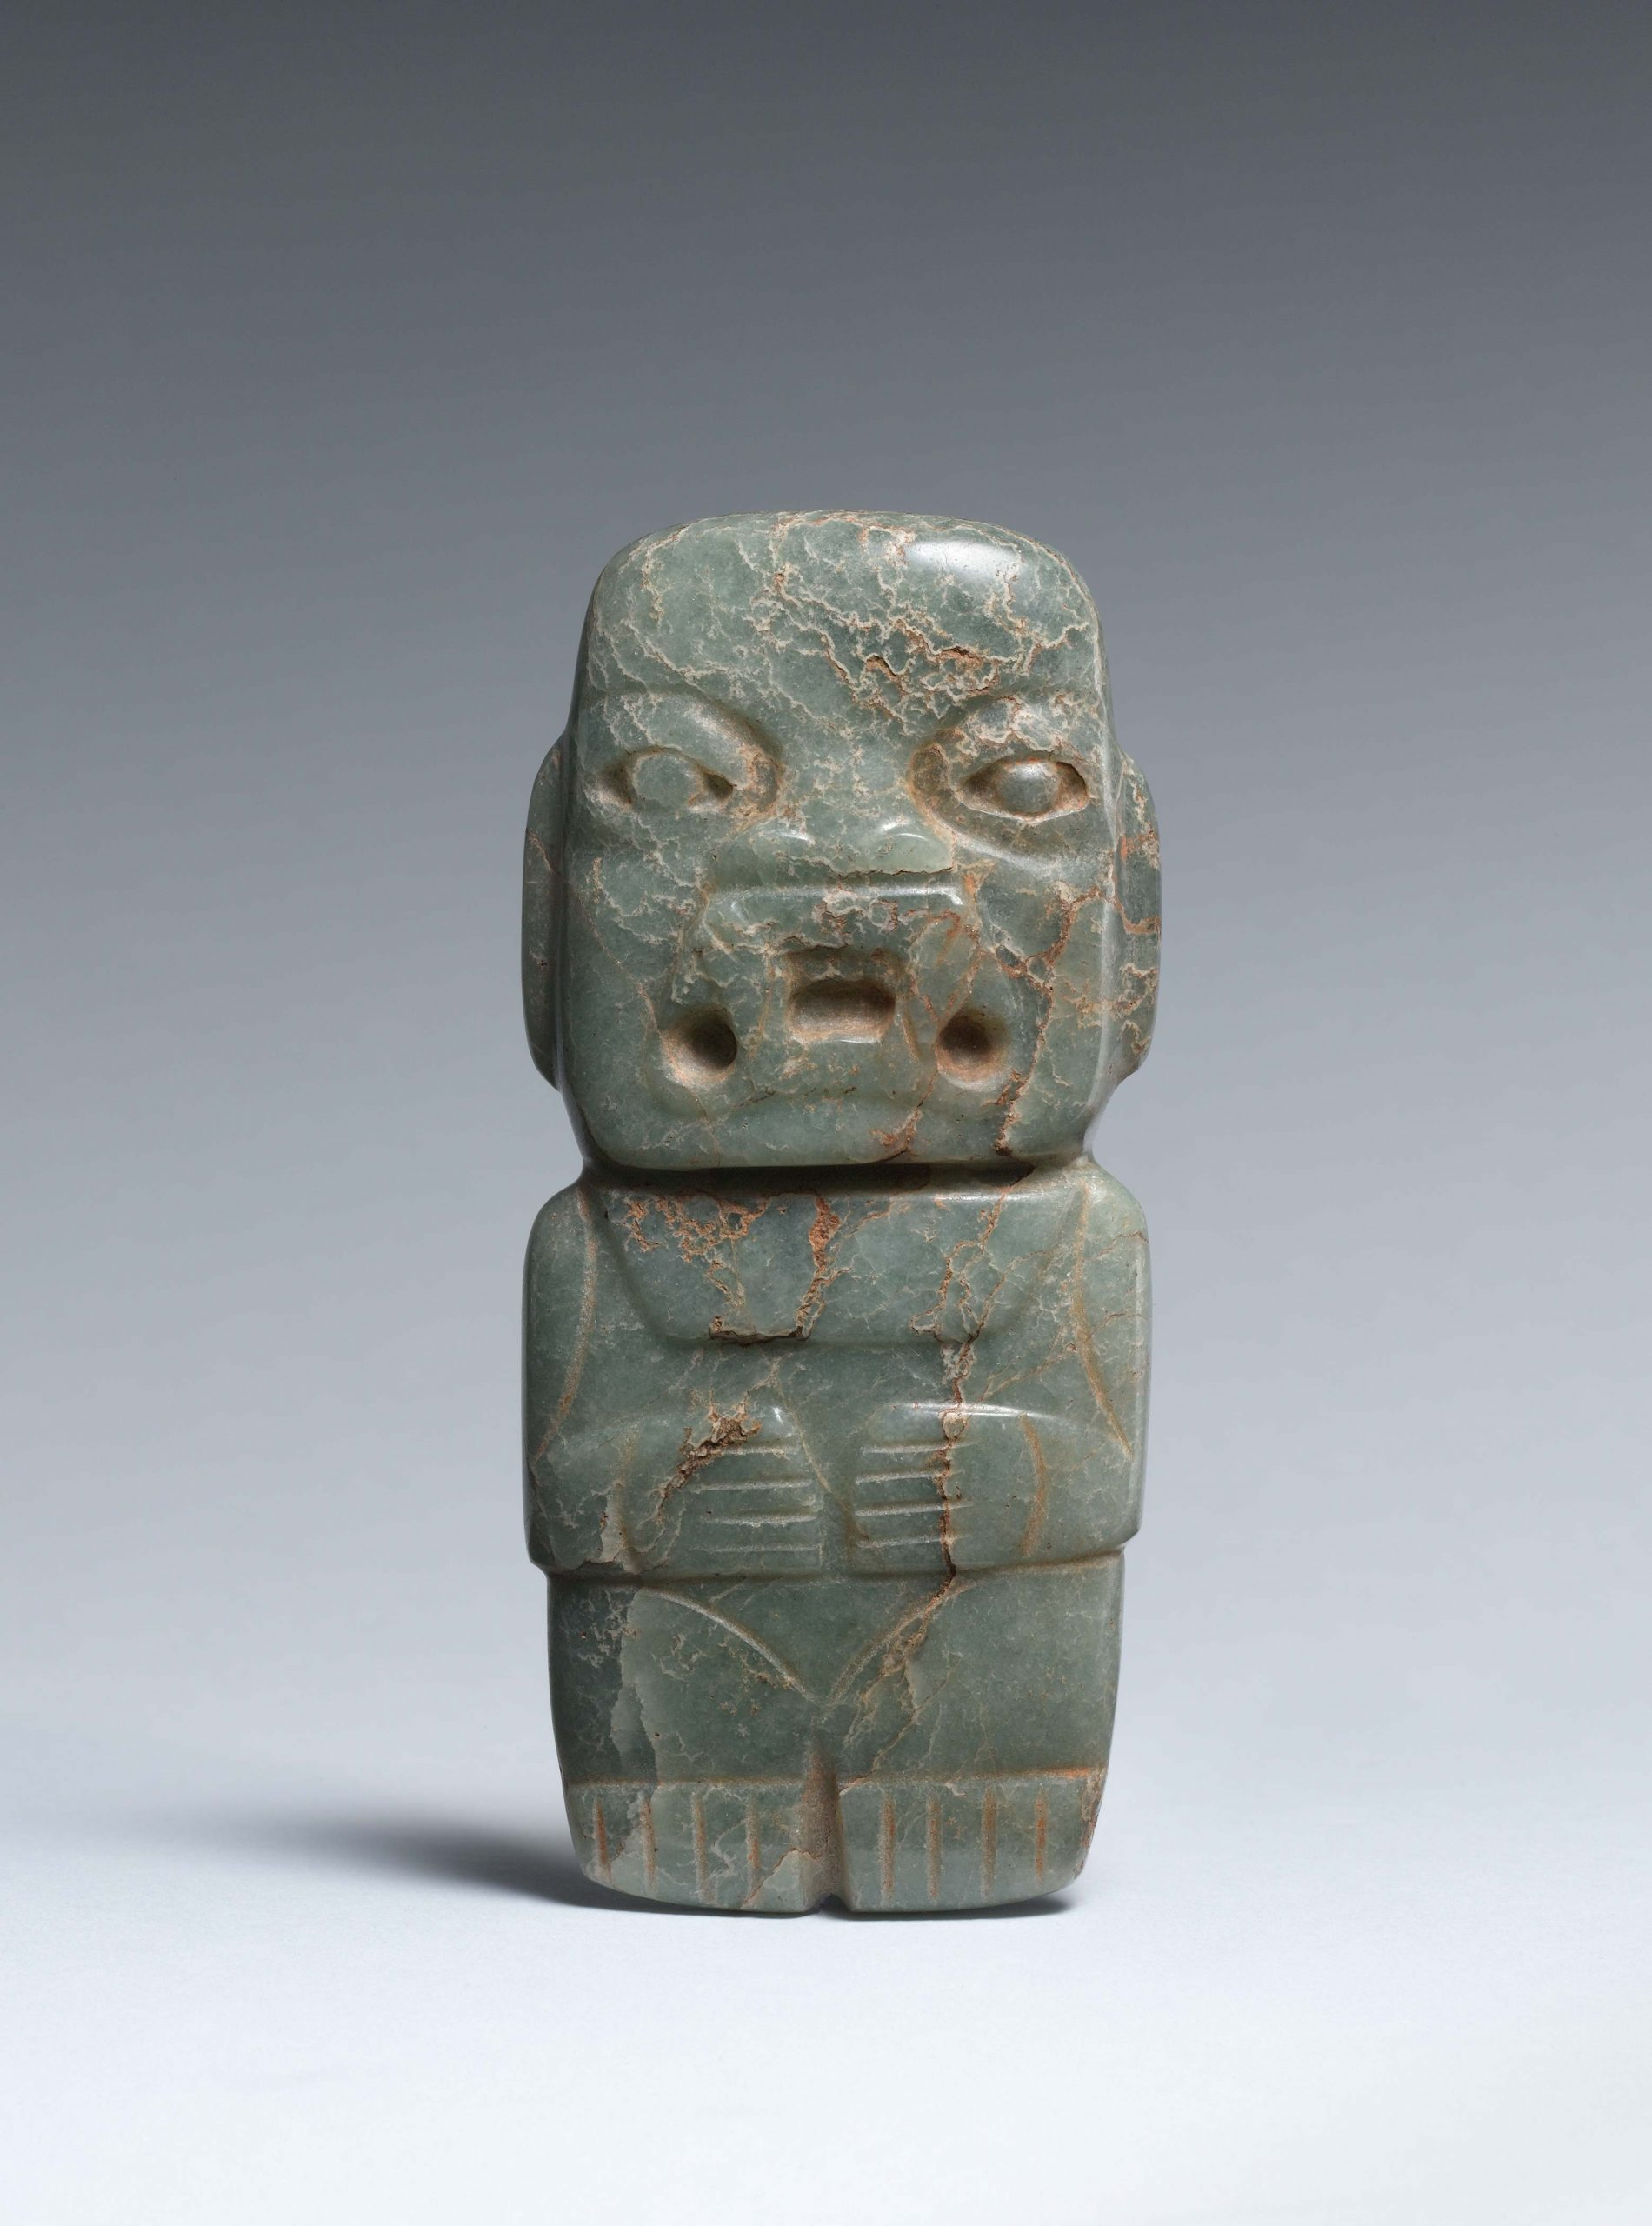 Male figure with almond-shaped eyes, cuts indicating arms, hands resting on knees across the torso, and a large open mouth with fangs.